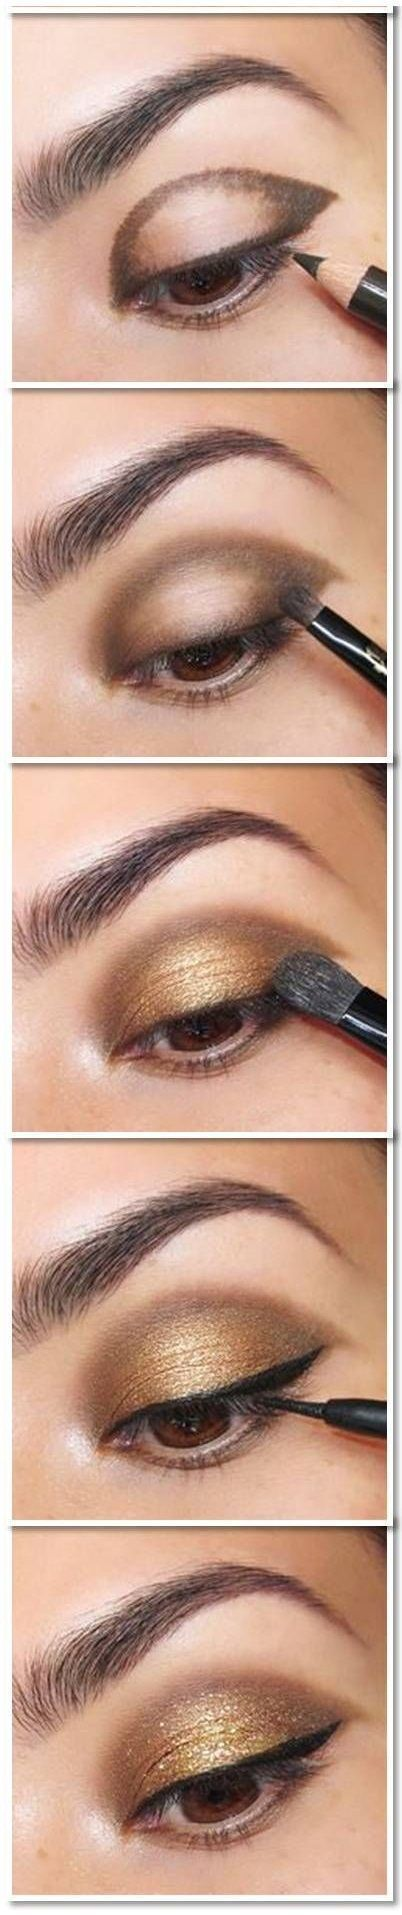 Eyeshadow Tutorial Ideas - Get this look with Natural & Cruelty Free Younique Cosmetics! Our pigments rival MAC & Bare Minerals offering you cleaner ingredients PLUS you get more for less! www.freshface.us Brown and Gold Eye Shadow